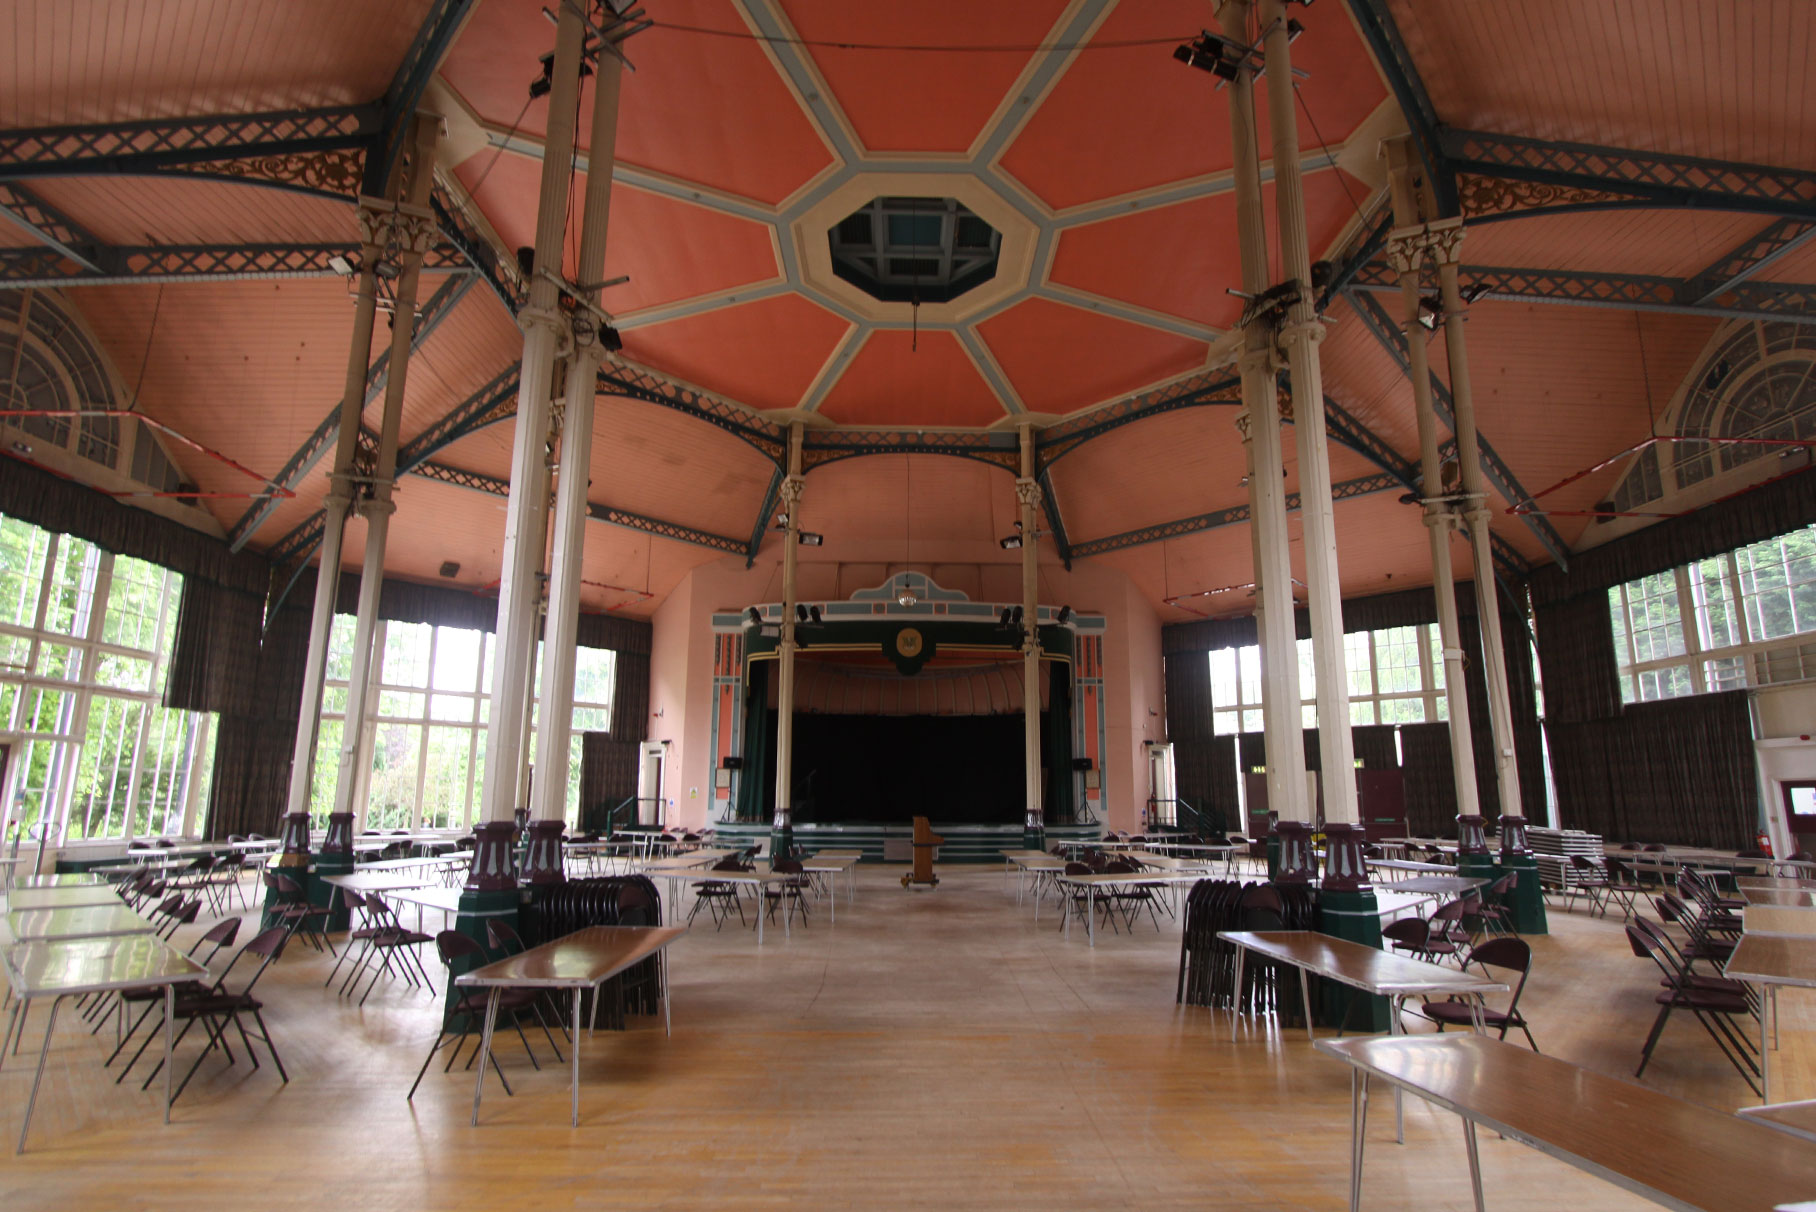 The Octagon - Pavilion Gardens - Concert Hall before works L6